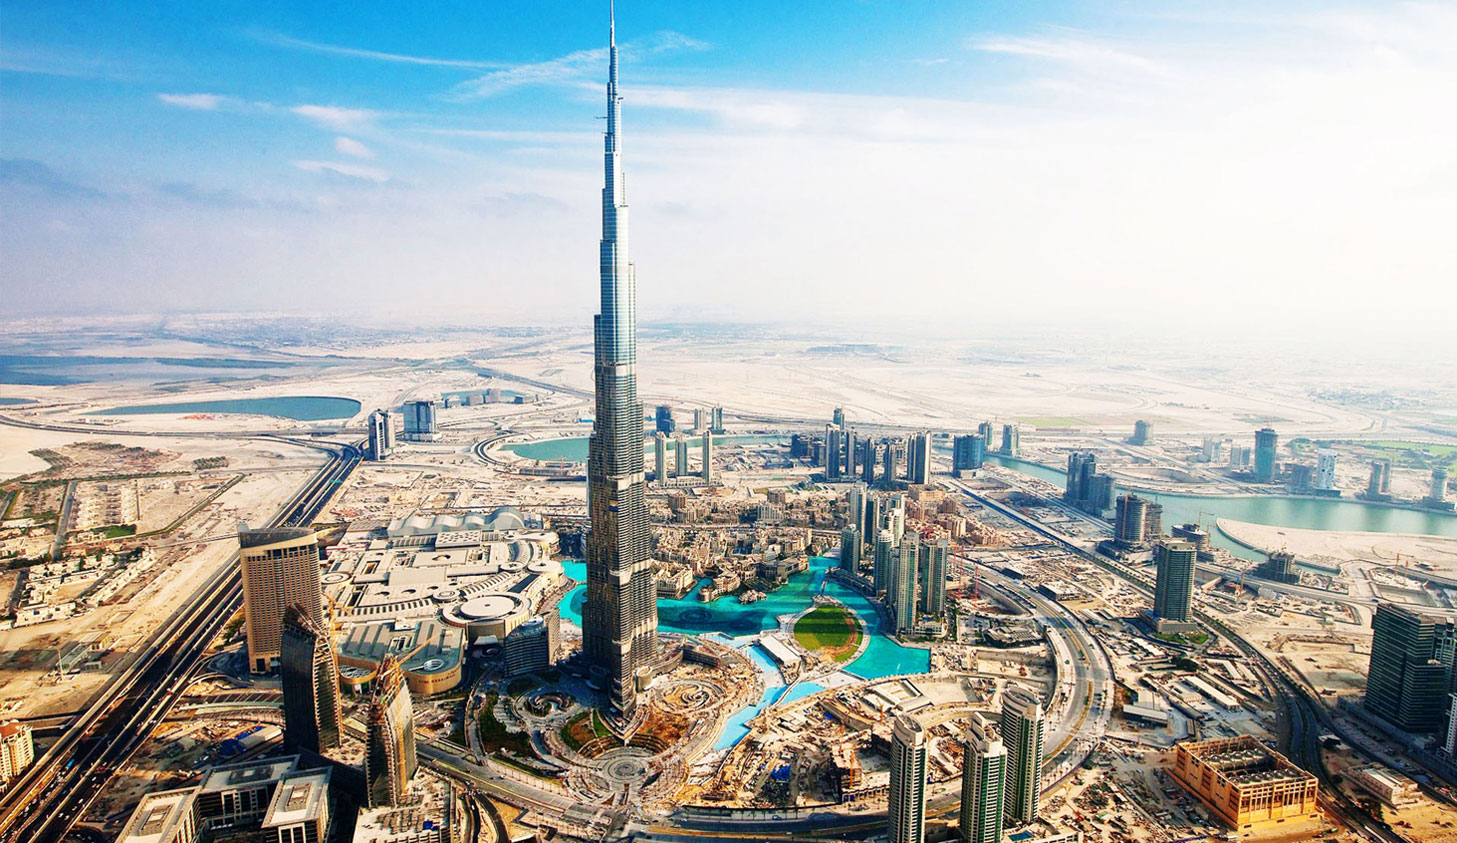 The most iconic spots in Downtown Dubai